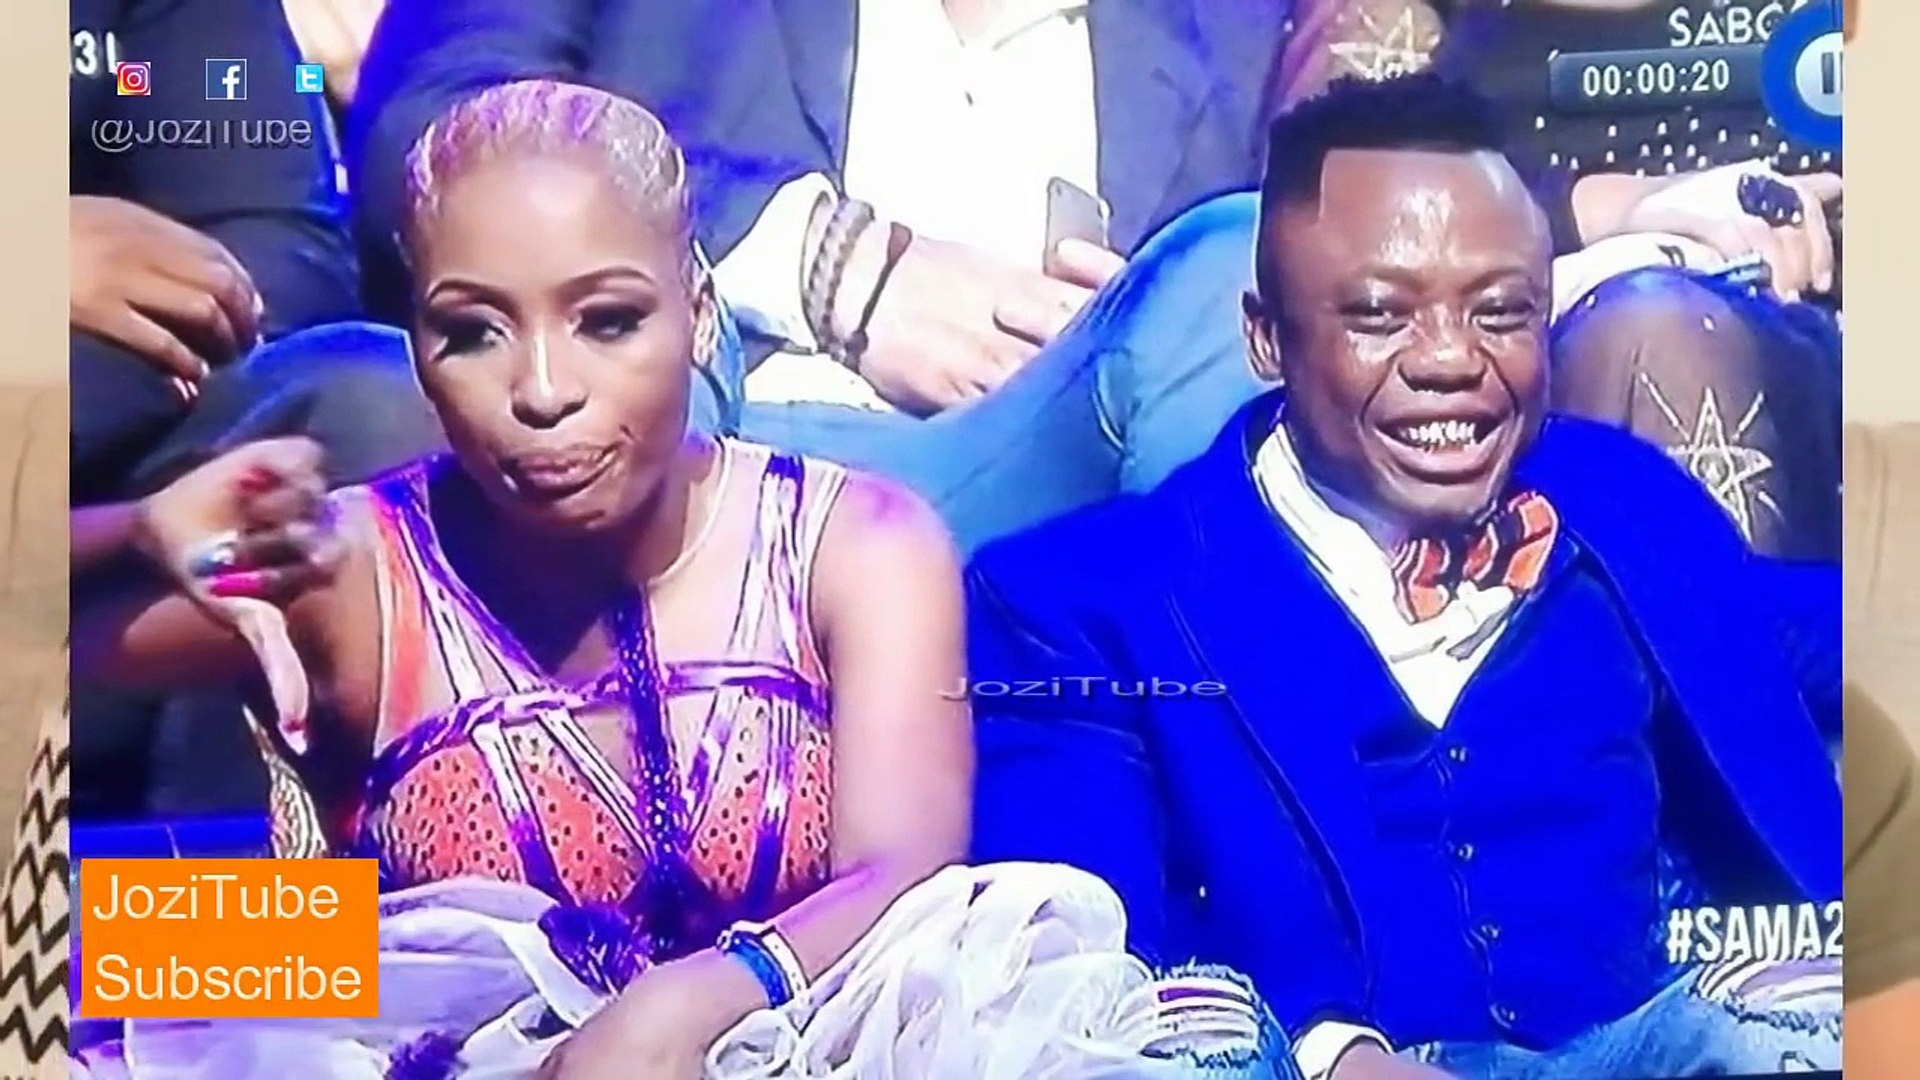 Dj tira's wife has been labelled rude and ugly by tweeps! Dj Tira S Wife Gugu Khathi Behaviour Explanation Clarification From Mafikizolo Video Dailymotion